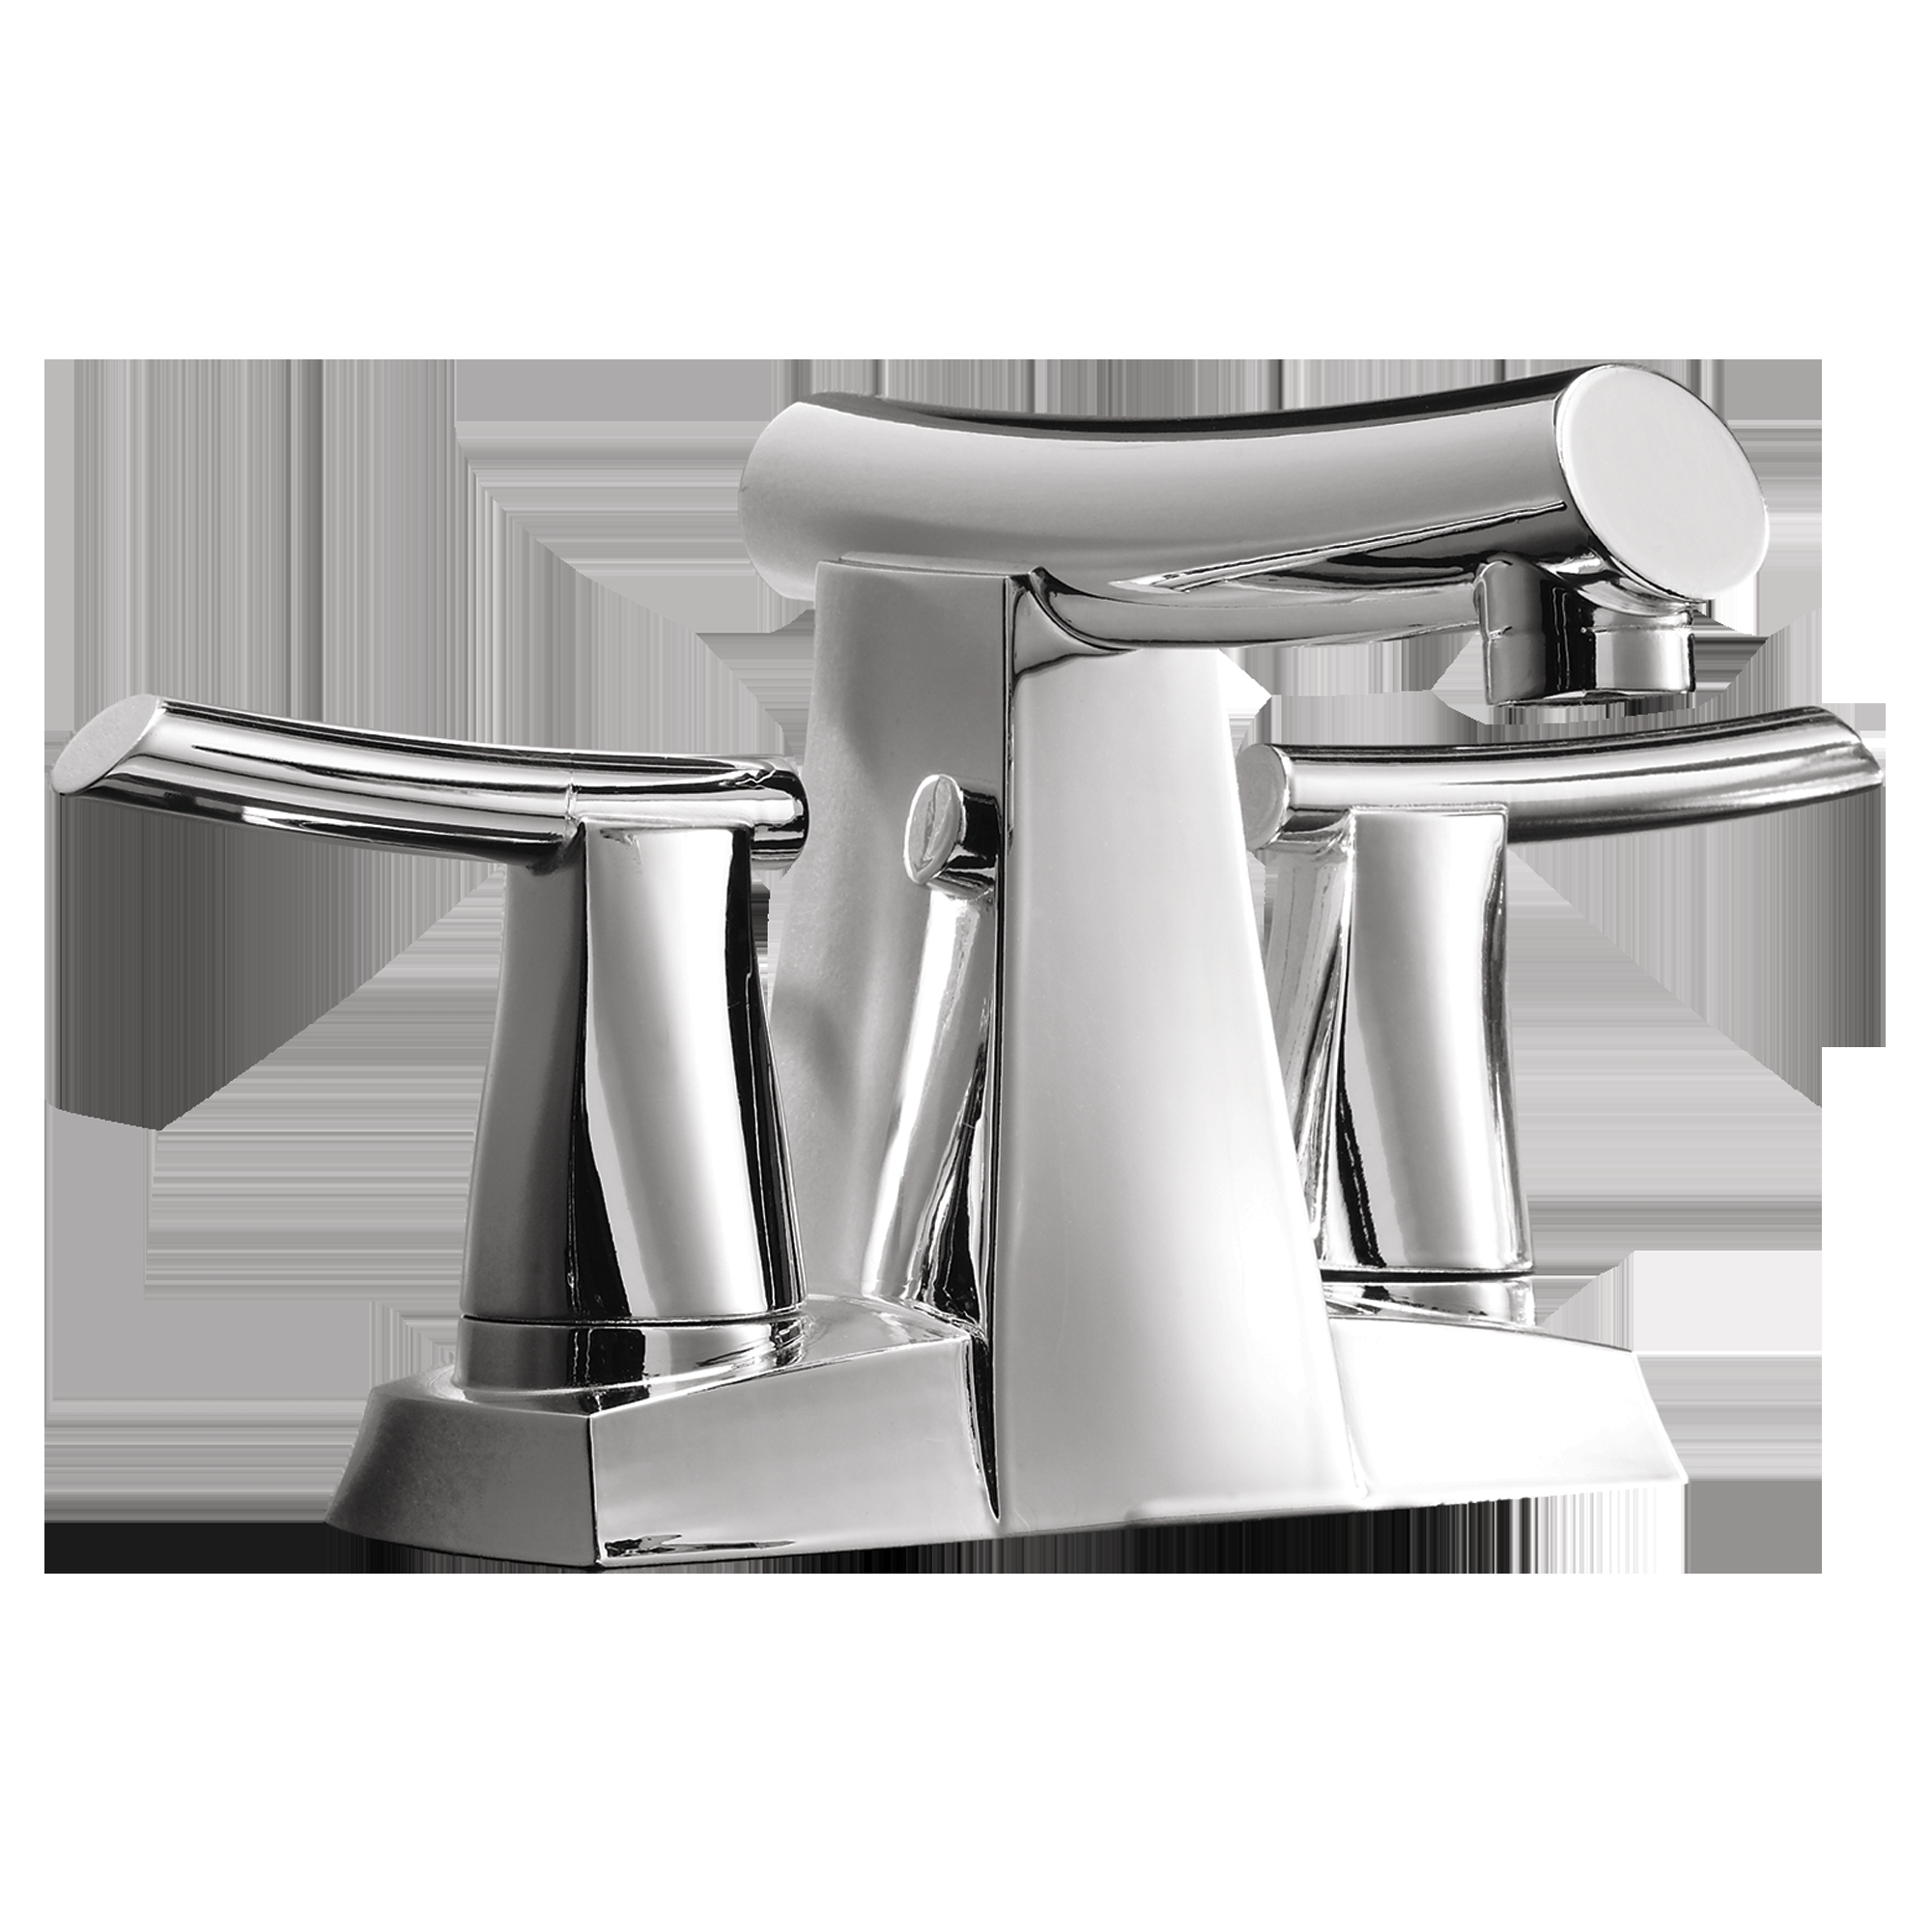 Ideas, bathroom faucets sink faucets tub fillers vessel faucets with regard to dimensions 2000 x 2000  .